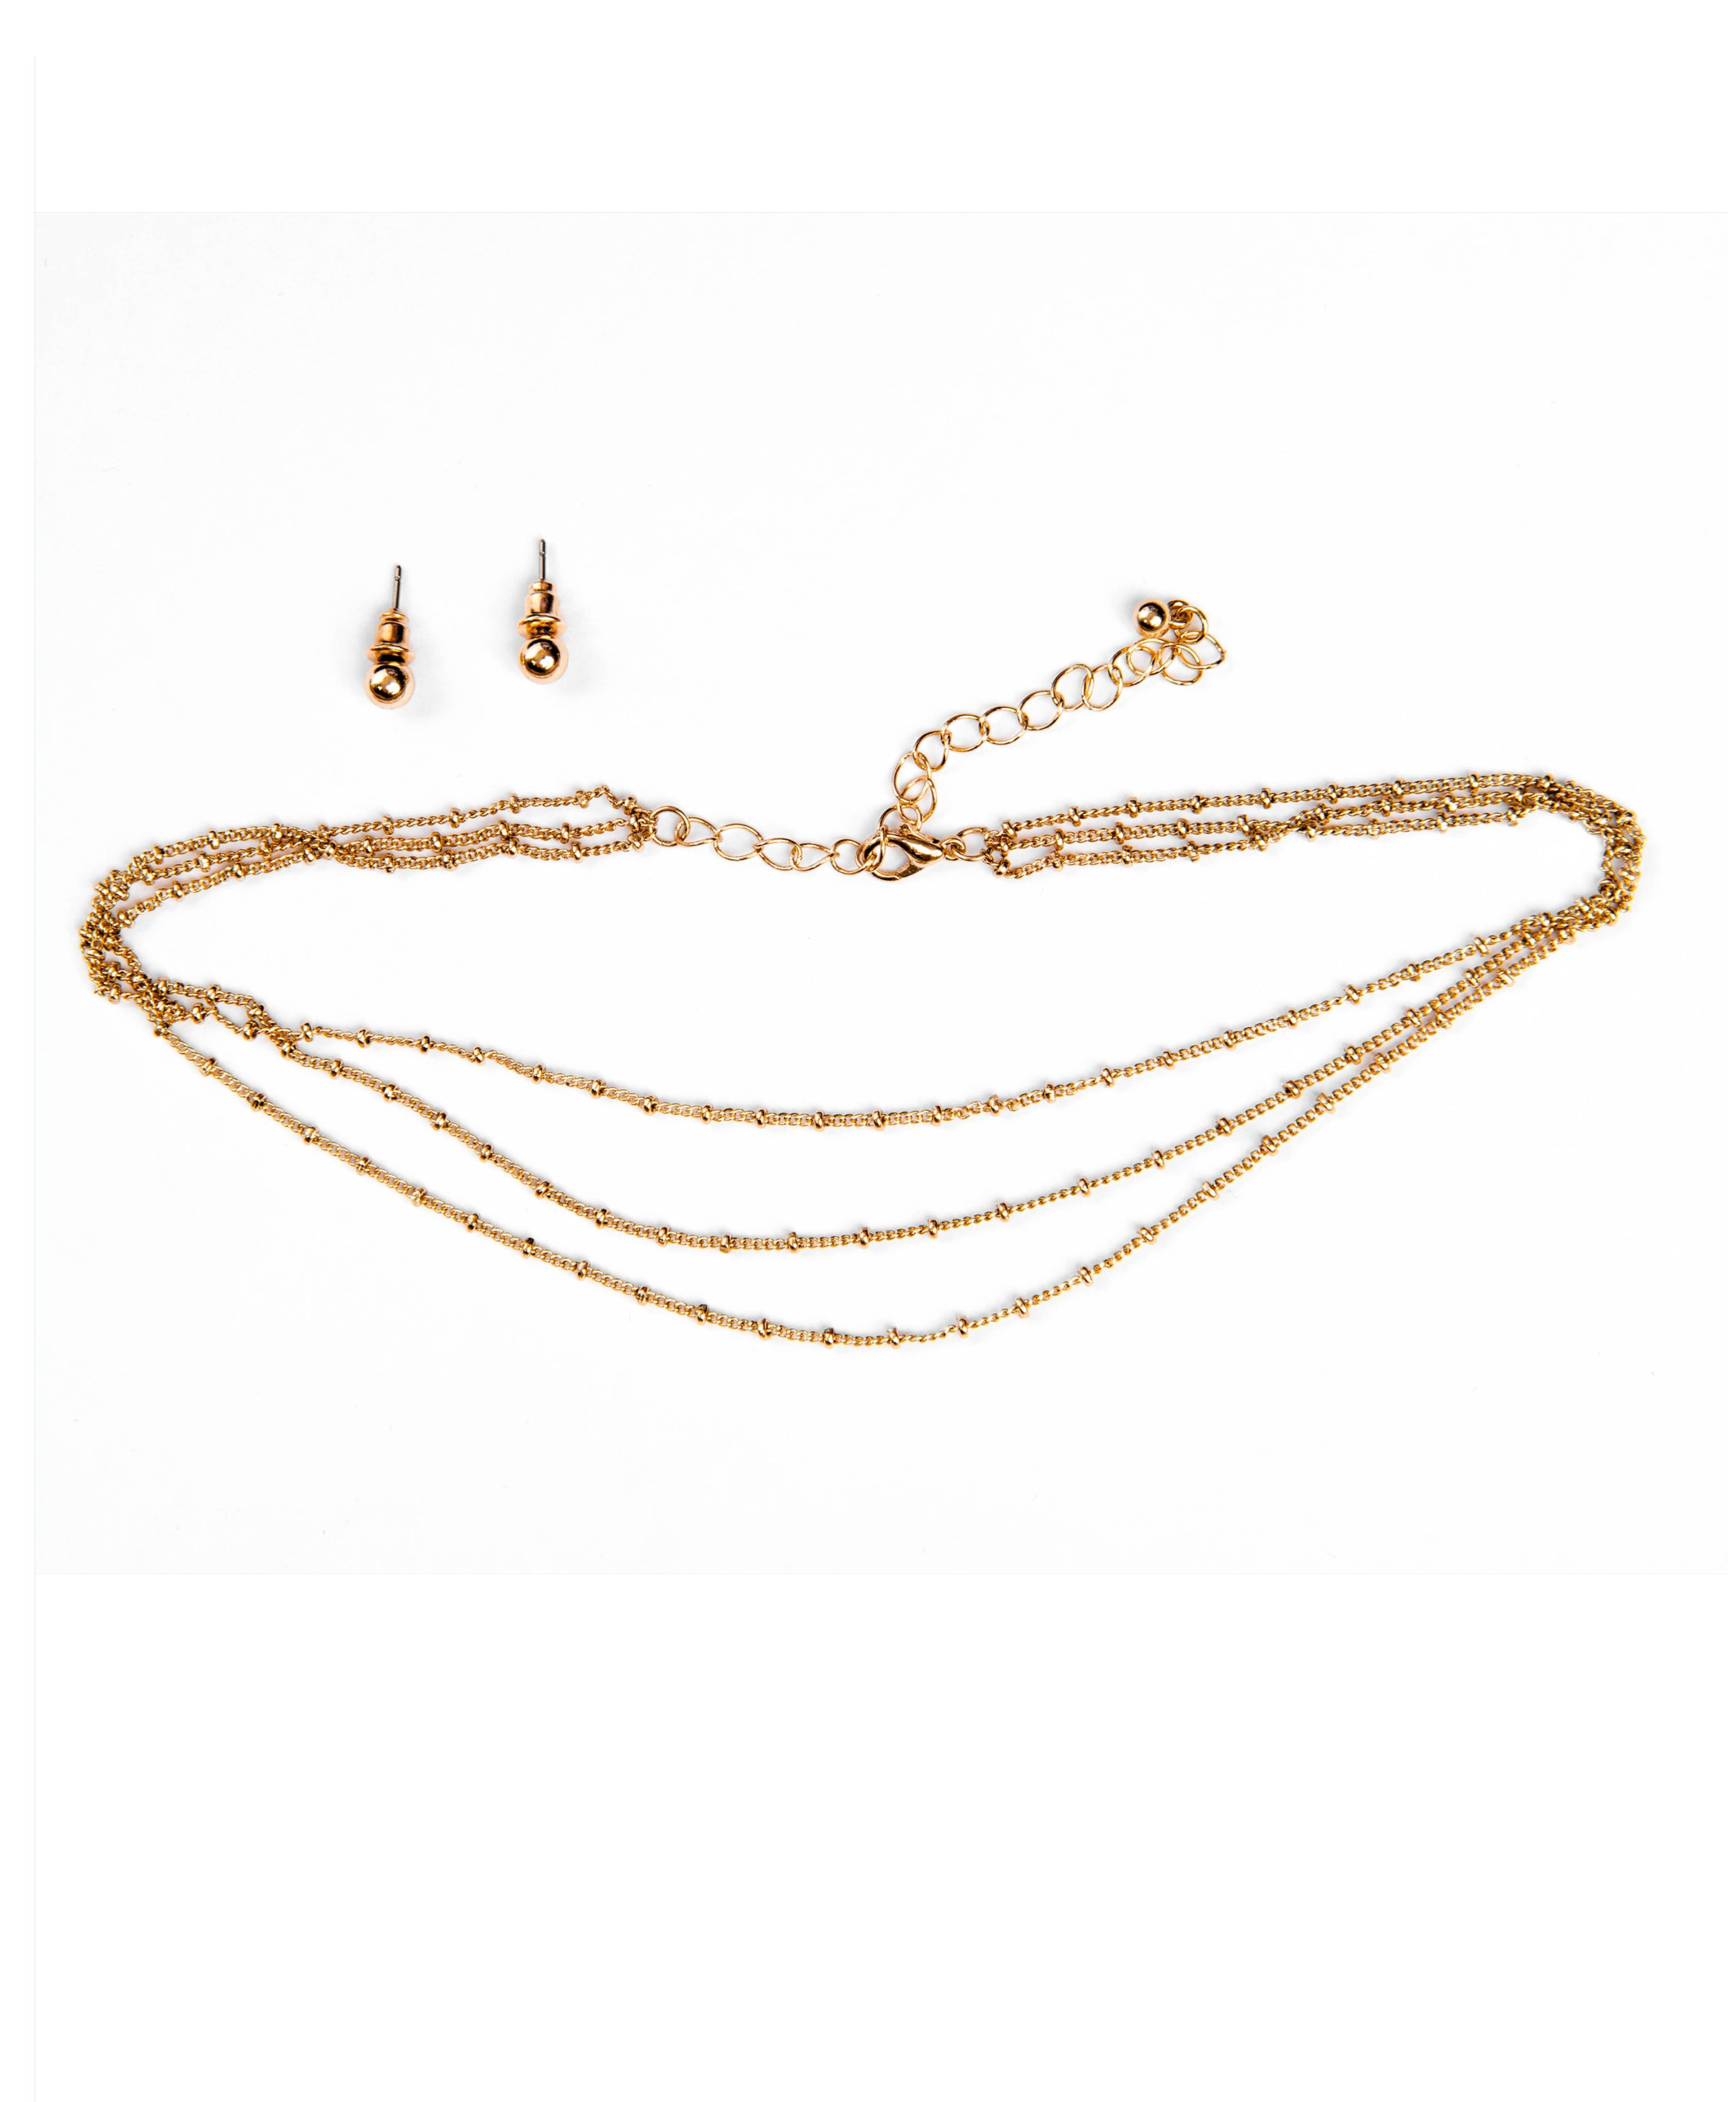 Mini Beaded Choker | Accessories | Bailey Nicole - Women's Clothes for All Occasions